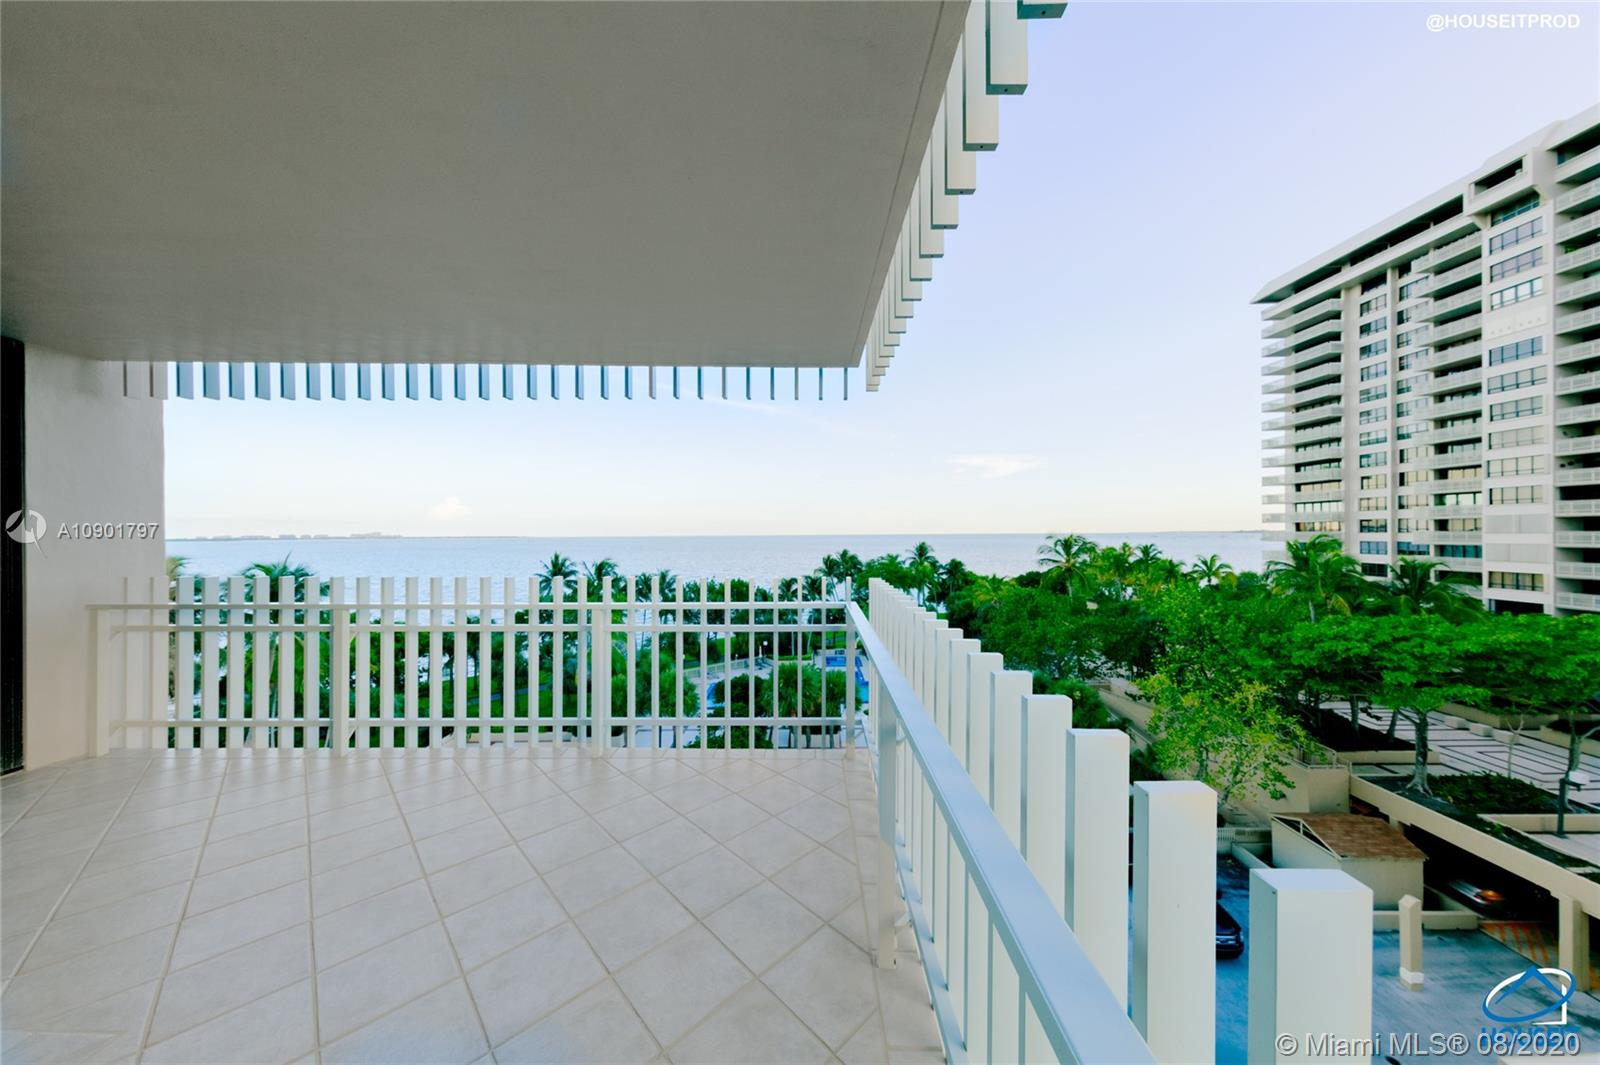 Lowest priced 3 bedroom, 2 bath in Grove Isle corner unit with unobstructed water views. Live on the only island in Coconut Grove while enjoying sunrises and sunsets from your own balconies. Paddleboard or kayak from the island's private beach or take a stroll to the Grove. Minutes away from the beach, downtown, business district and the airport.